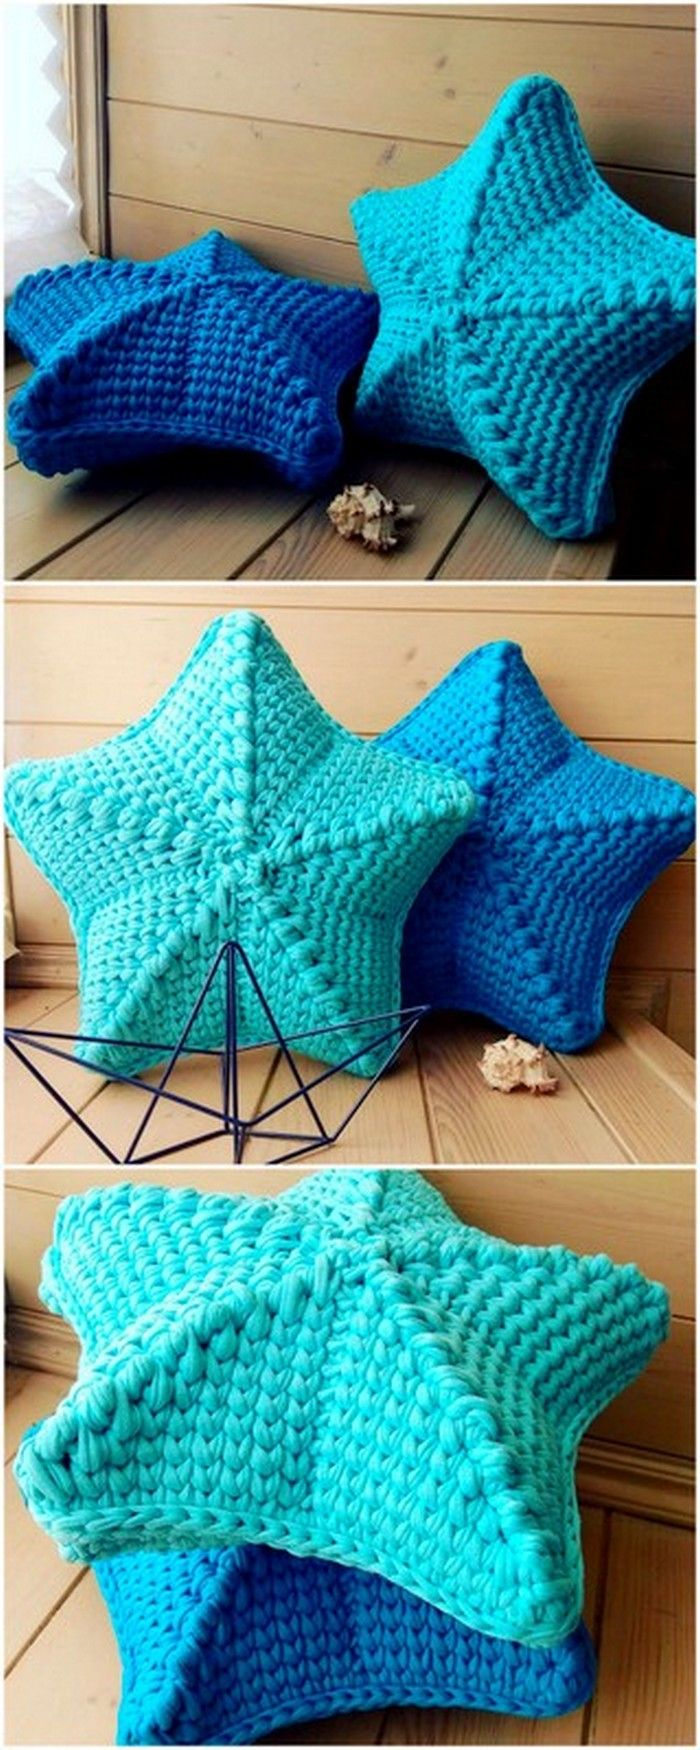 50 Top Trending Crochet Free Pattern Ideas For You And Your Home #freepattern